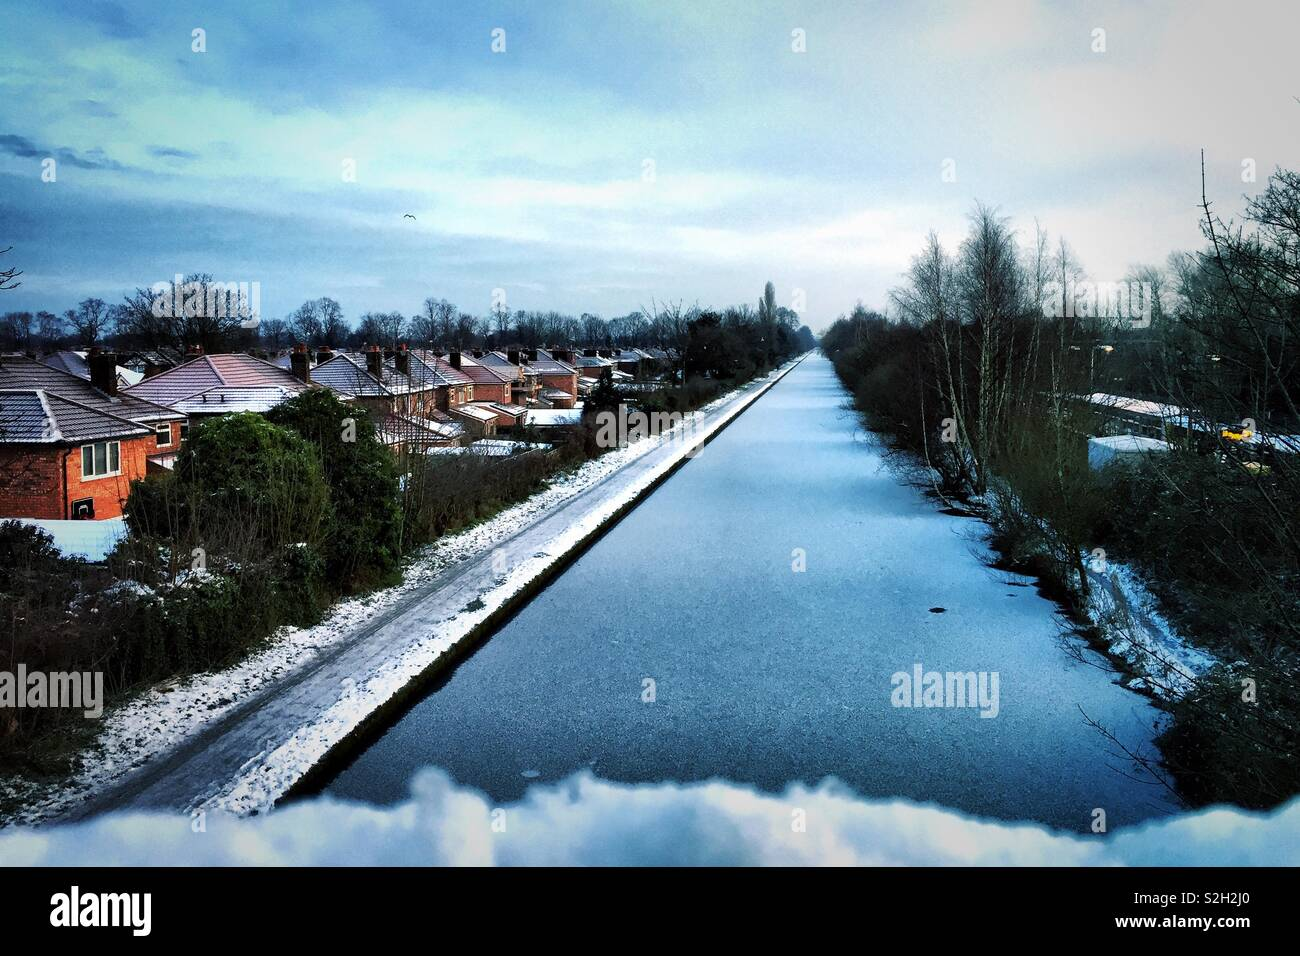 Frozen canal in Timperley Greater Manchester, Cheshire 1 February 2019 - Stock Image